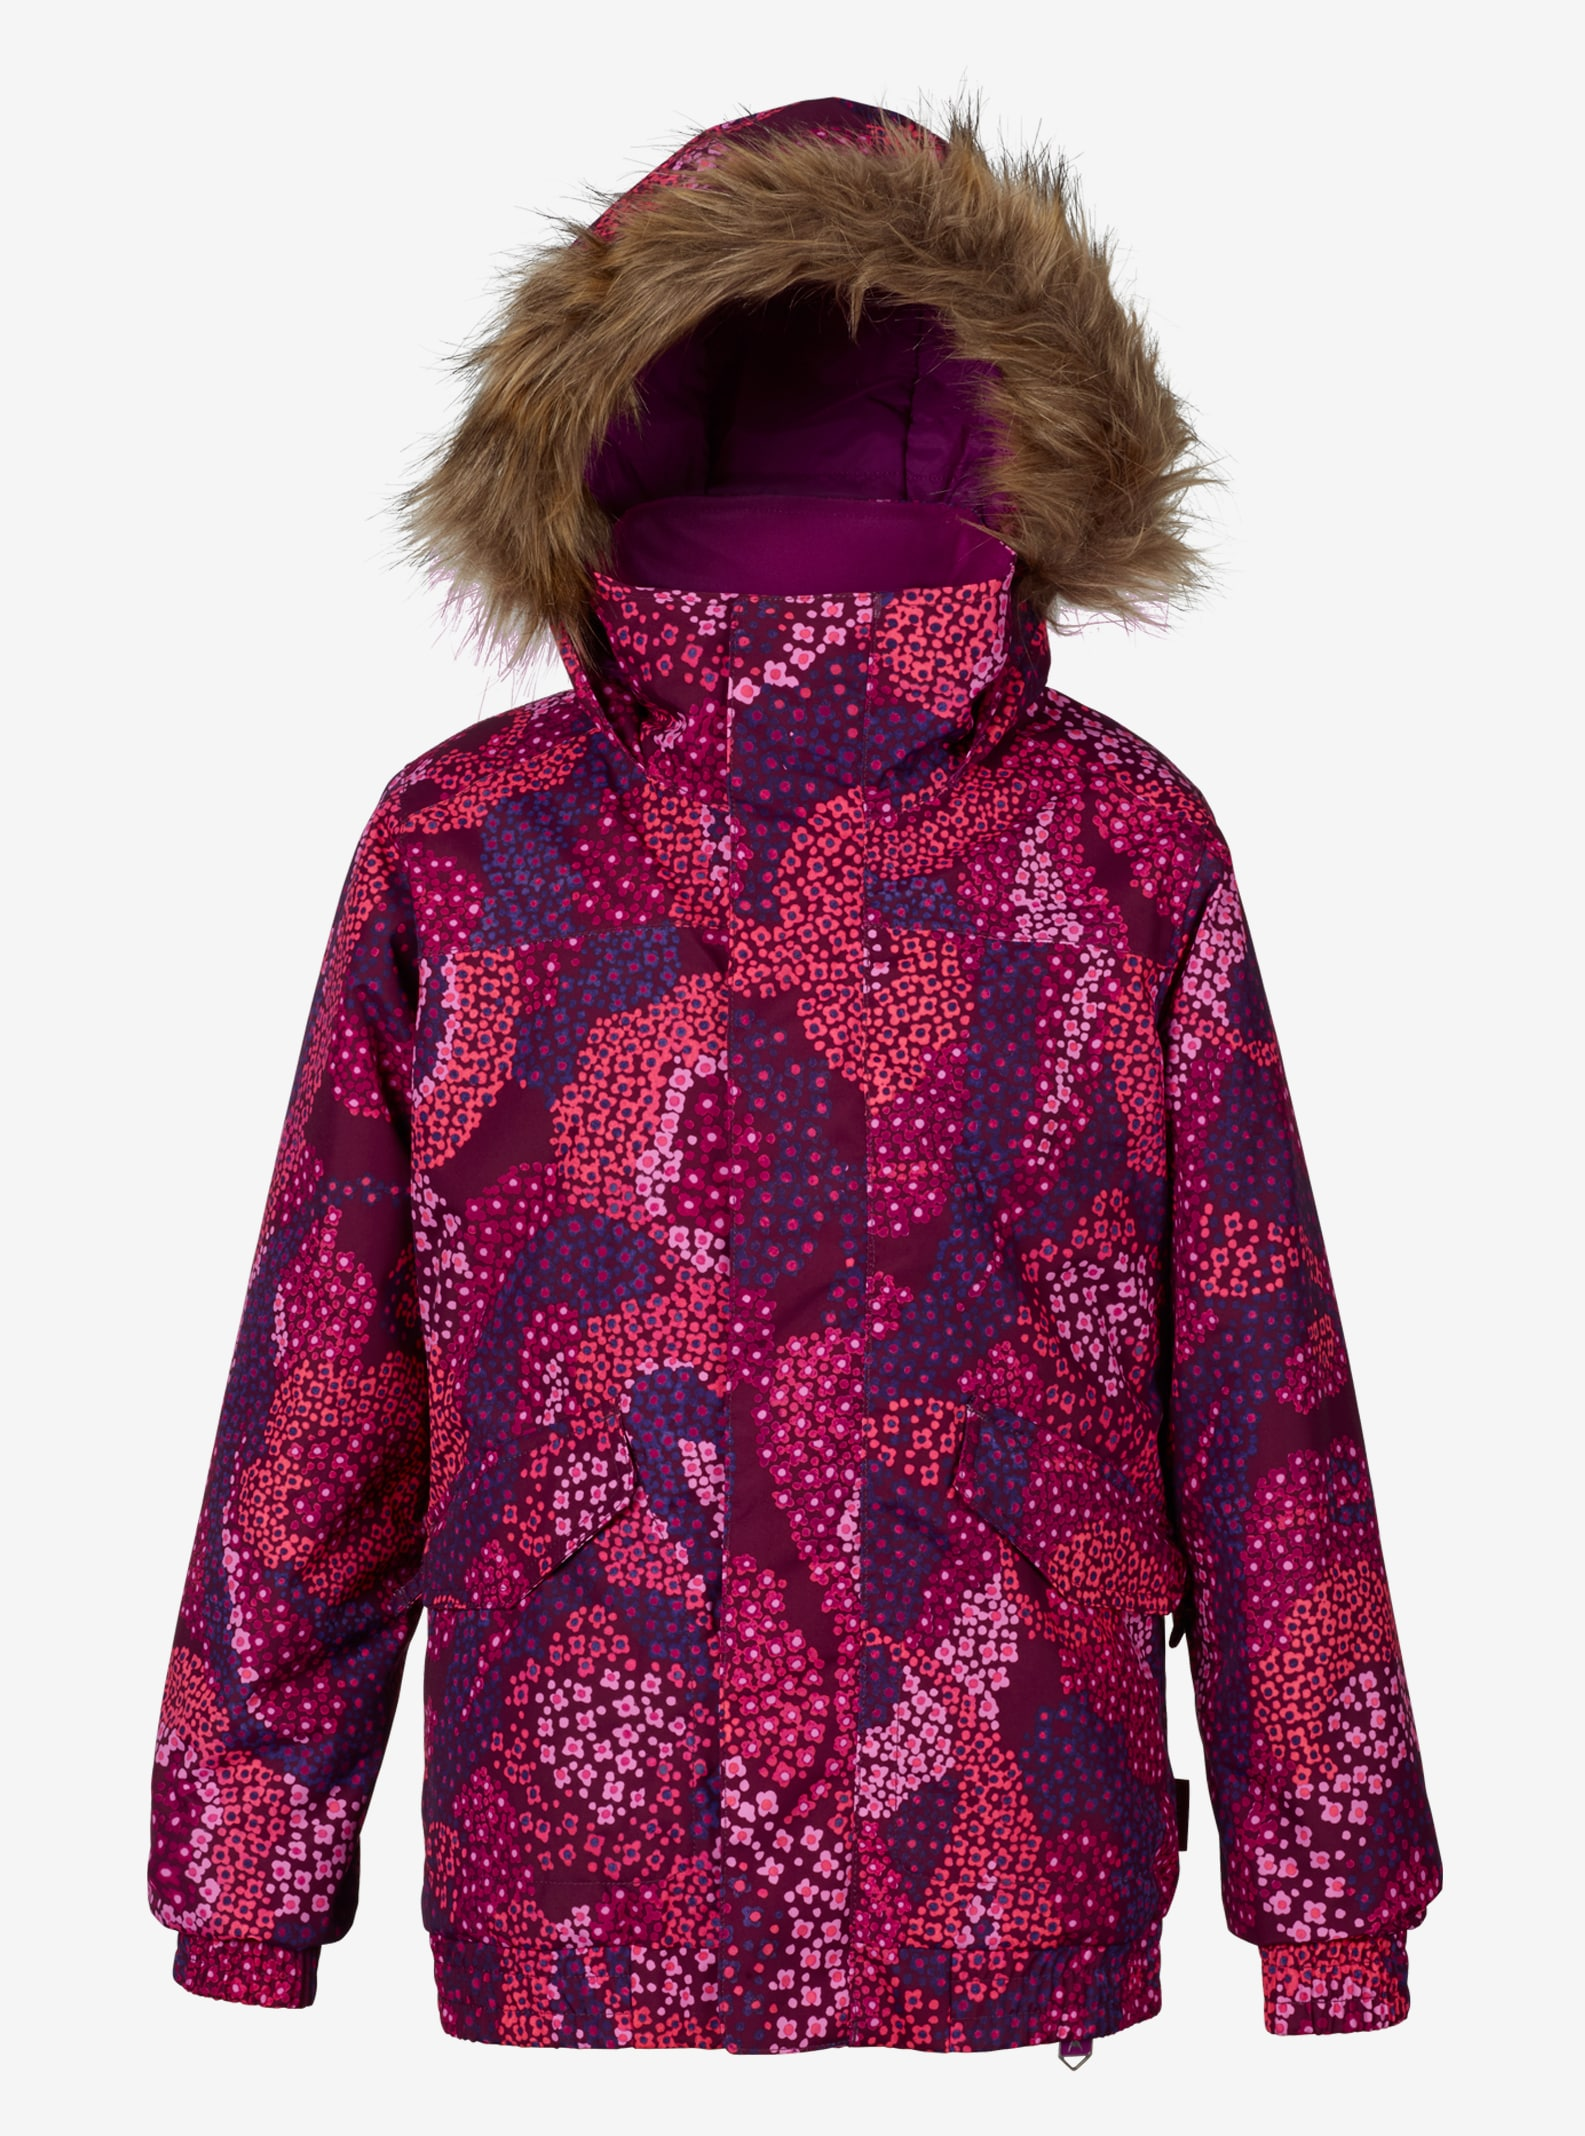 Girls' Burton Whiply Bomber Jacket shown in Cosmos Petal Paisley